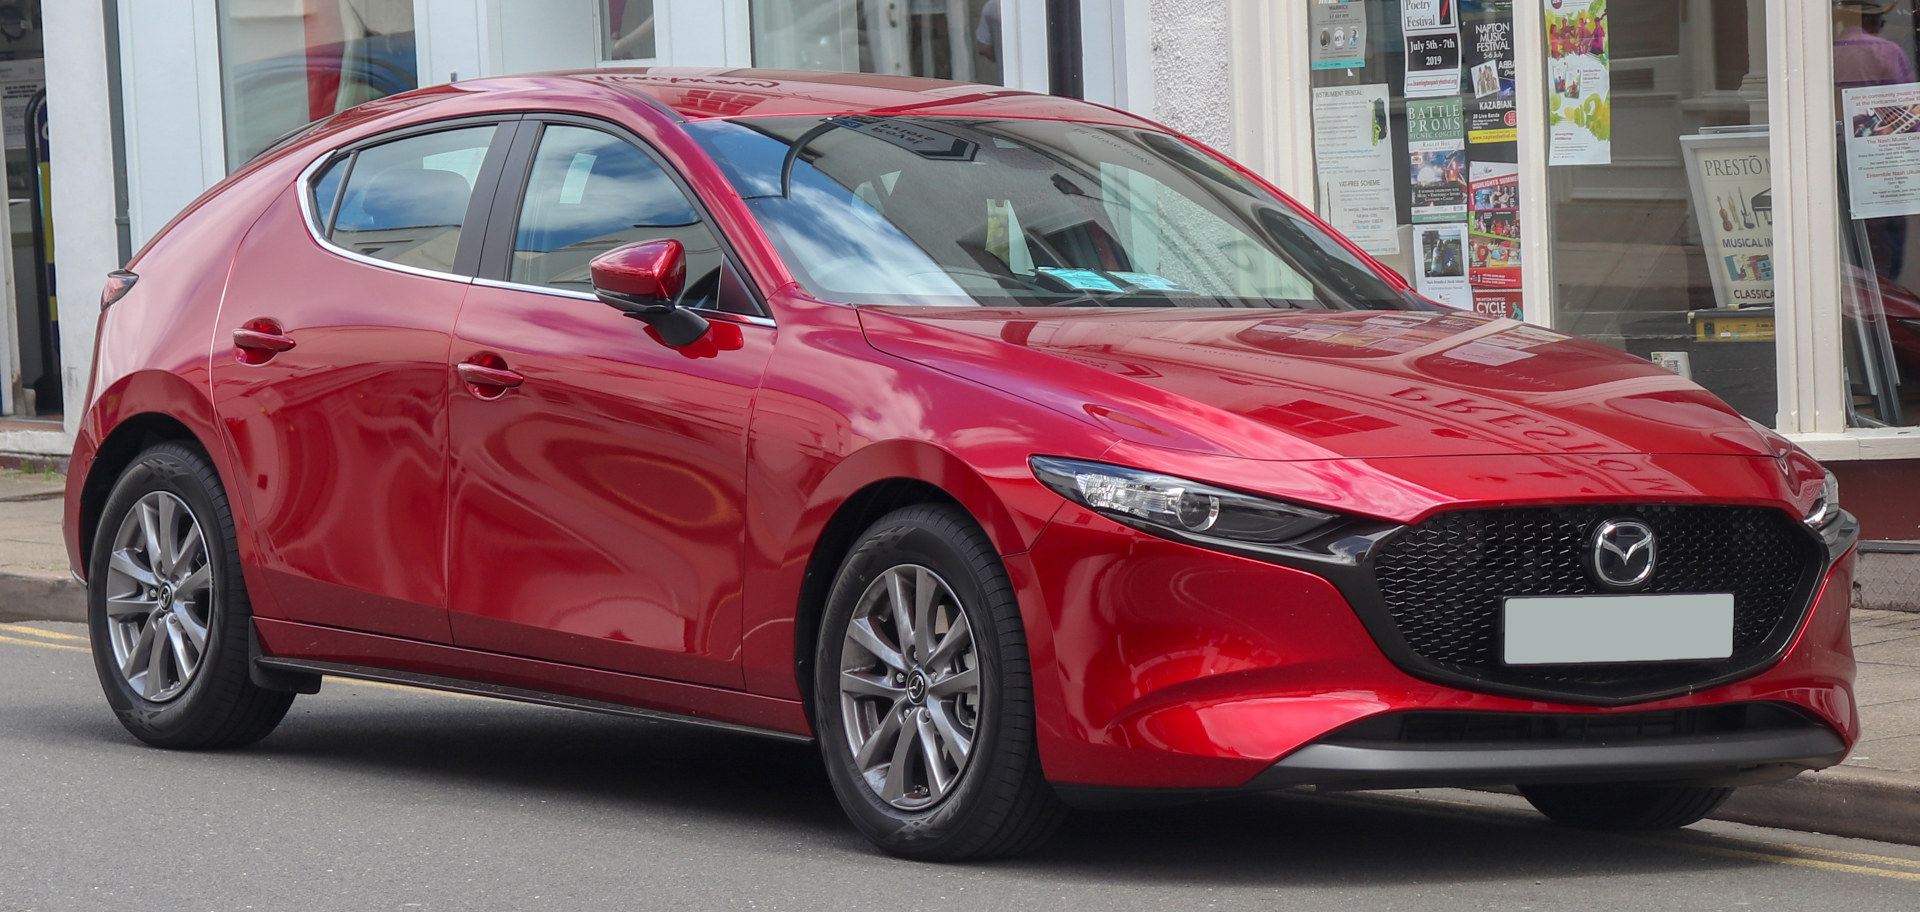 The Women's World Car of the Year 2019 competition in Dubai, UAE, has come to an end, with the Mazda3 emerging as the best family car and the overall winner.